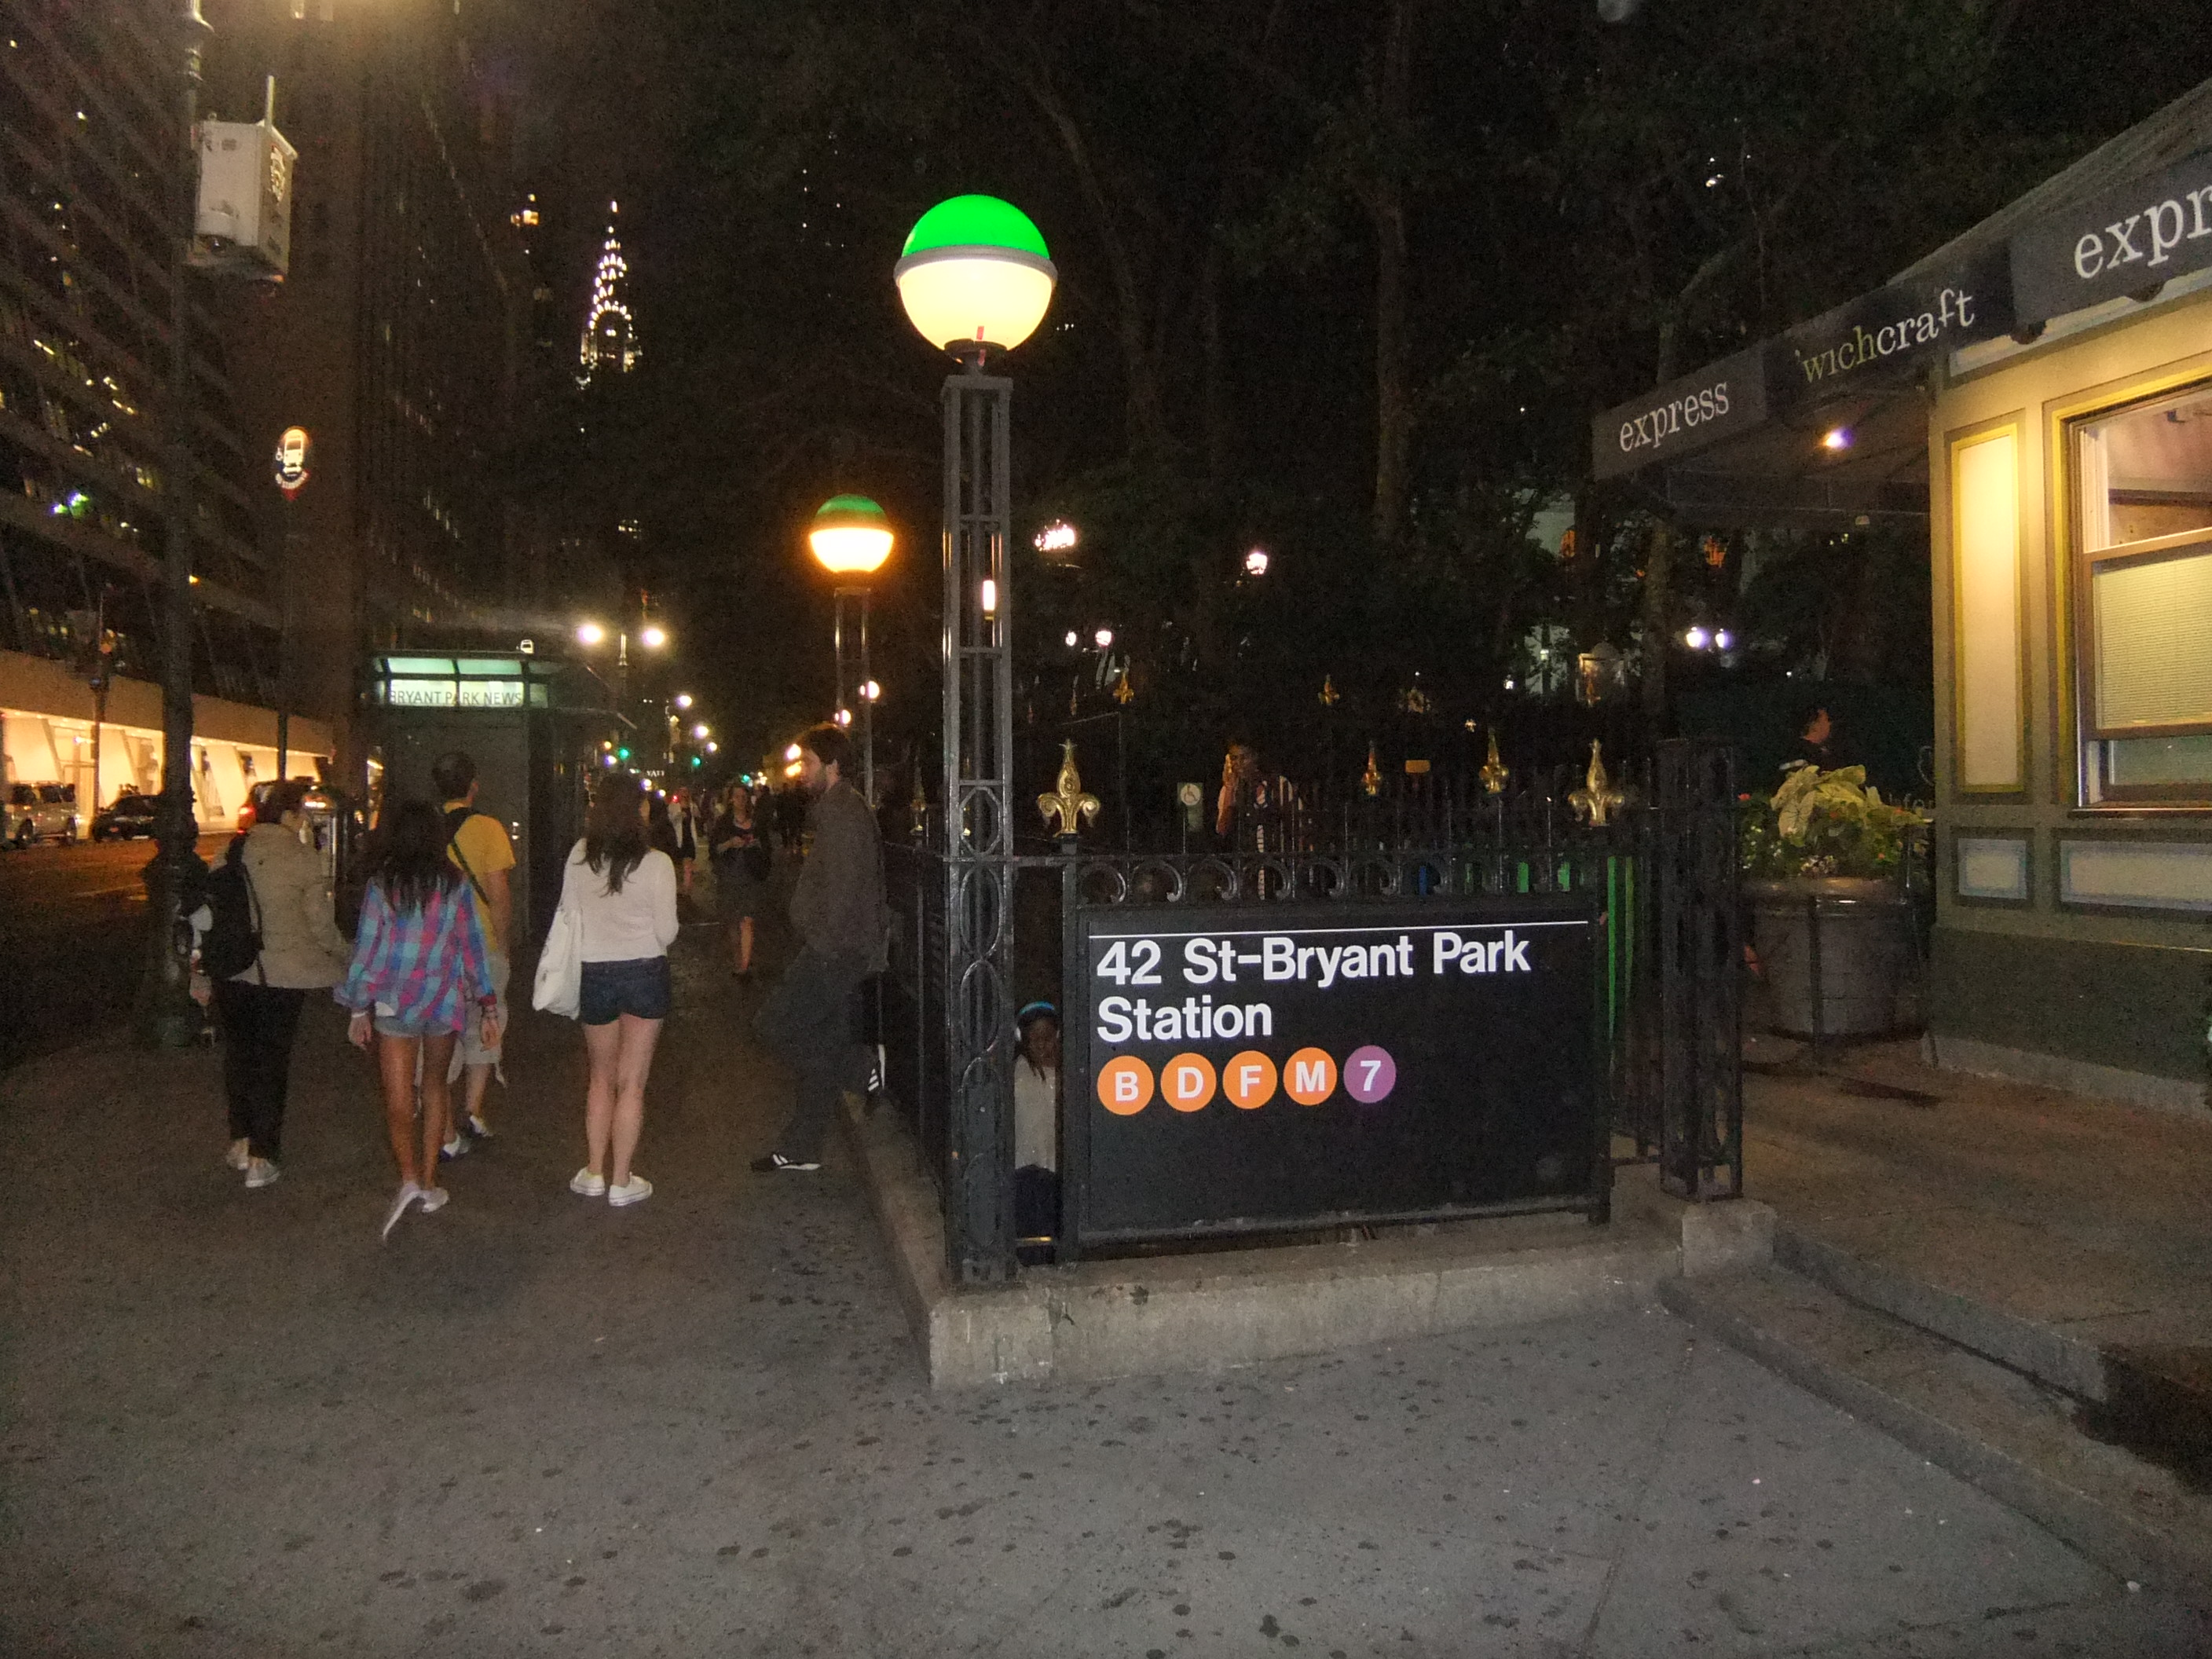 42nd Street–Bryant Park/Fifth Avenue station - Wikipedia on malverne ny street map, nyc street calendar, nyc alternate parking map, nyc parking meter map, nyc dot map, nyc street map.pdf, nyc community board map, parking in nyc map, manhattan street map, nyc parking regulations, nyc parking garages locator, ann st nyc map, nyc delivery map, nyc street tours, nyc alternate street cleaning, nyc parking garage map, streets of new york city map, sf street cleaning map, brooklyn new york zip code map, mta brooklyn bus route map,